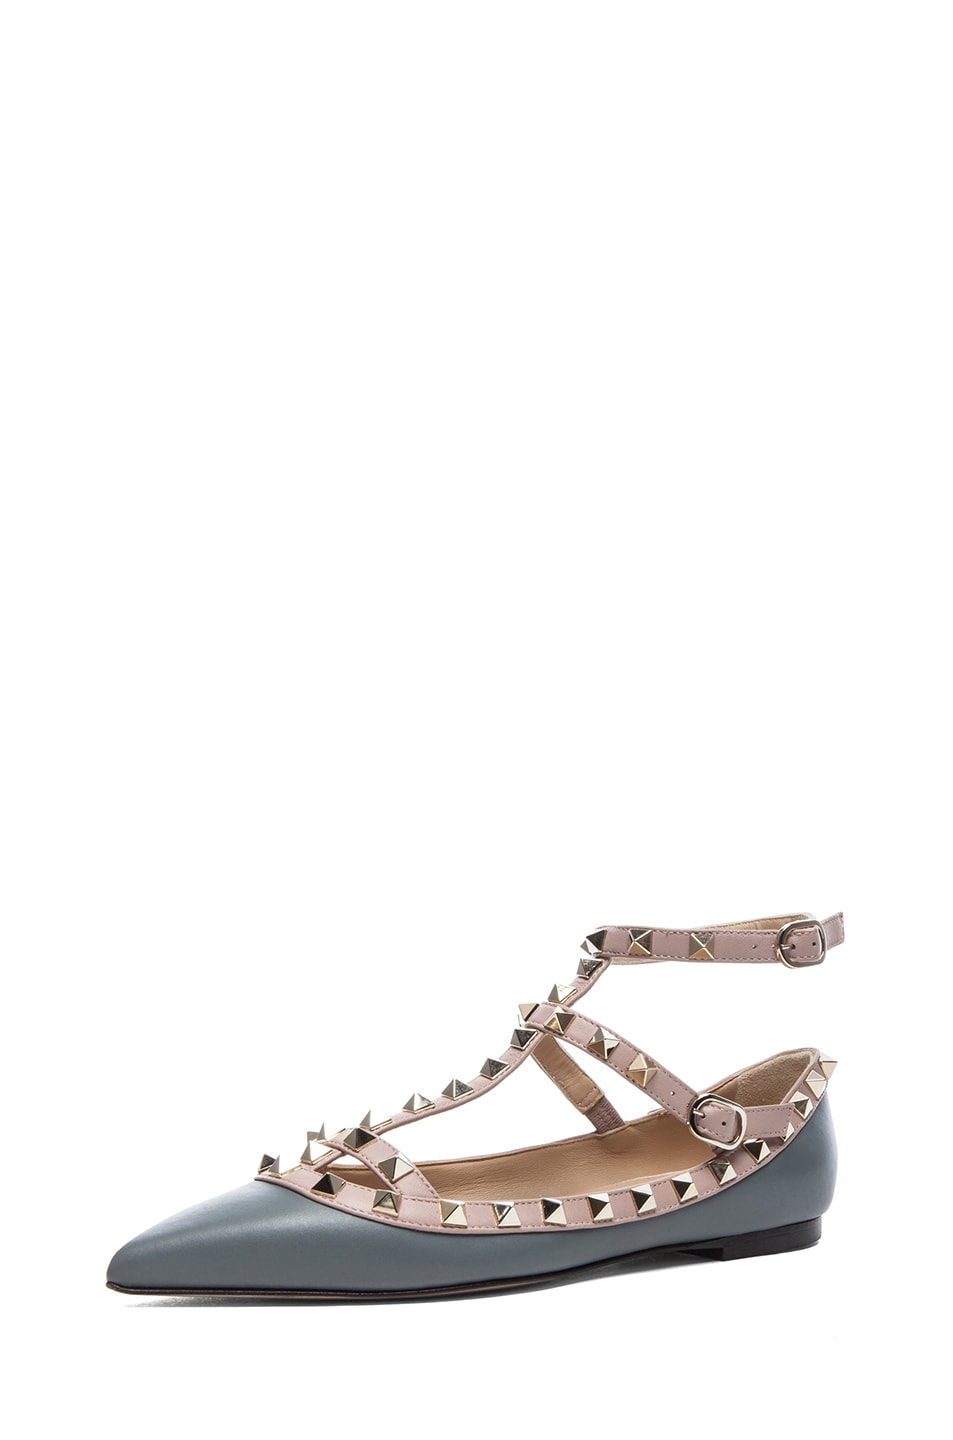 Image 2 of Valentino Rockstud Leather Ballerina Flats in Stone